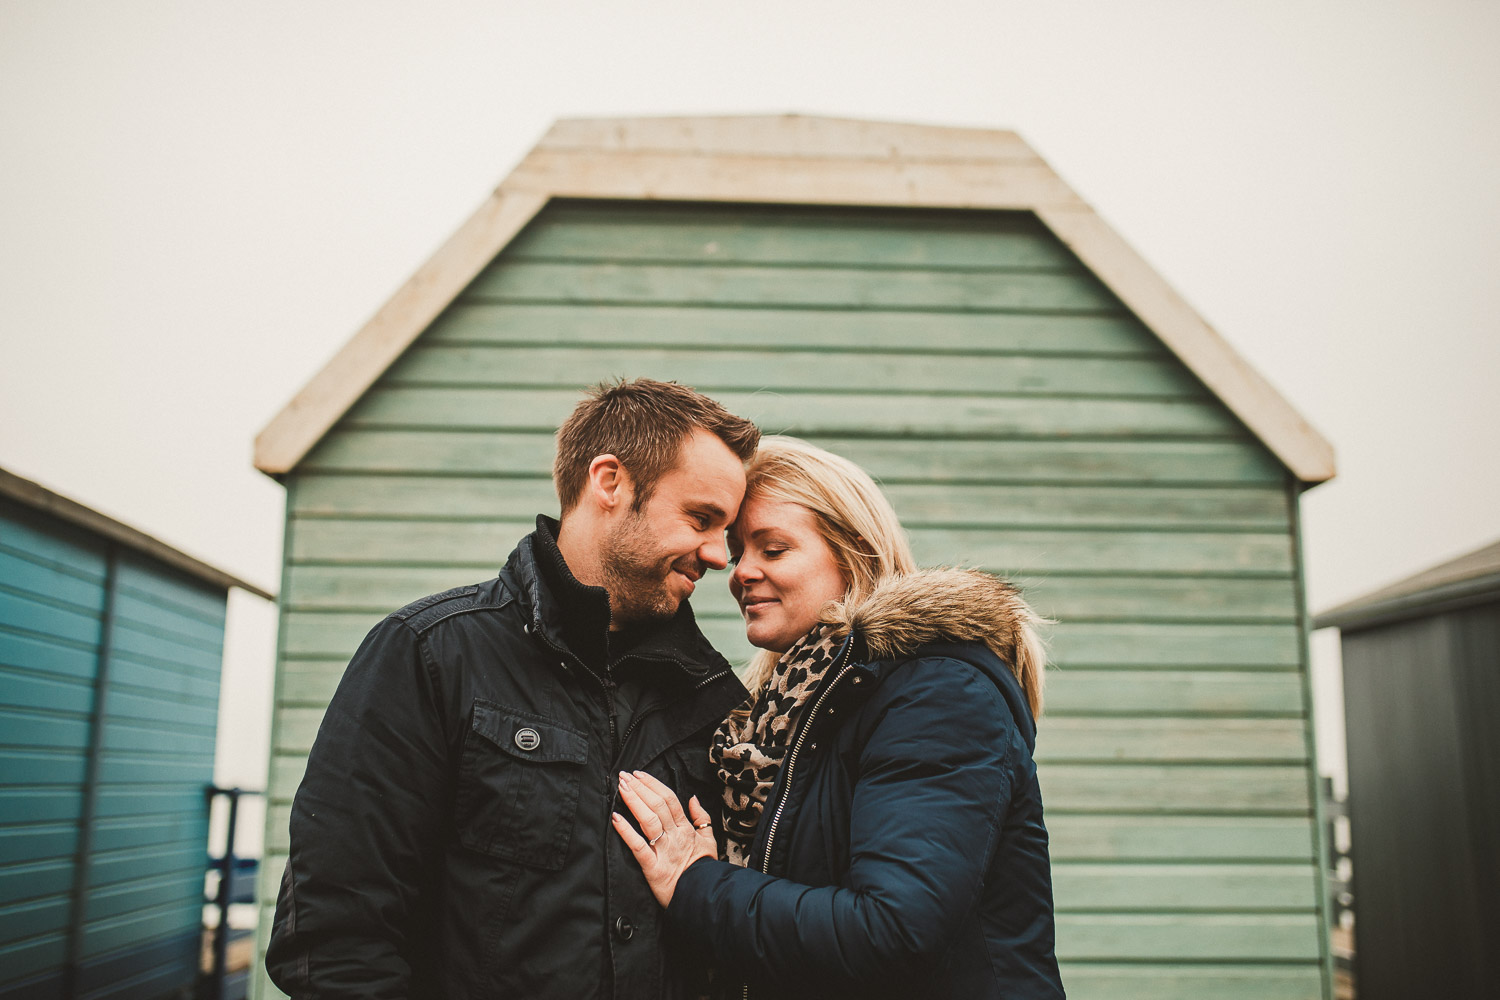 East-Quay-Whistable-Engagement-12.jpg